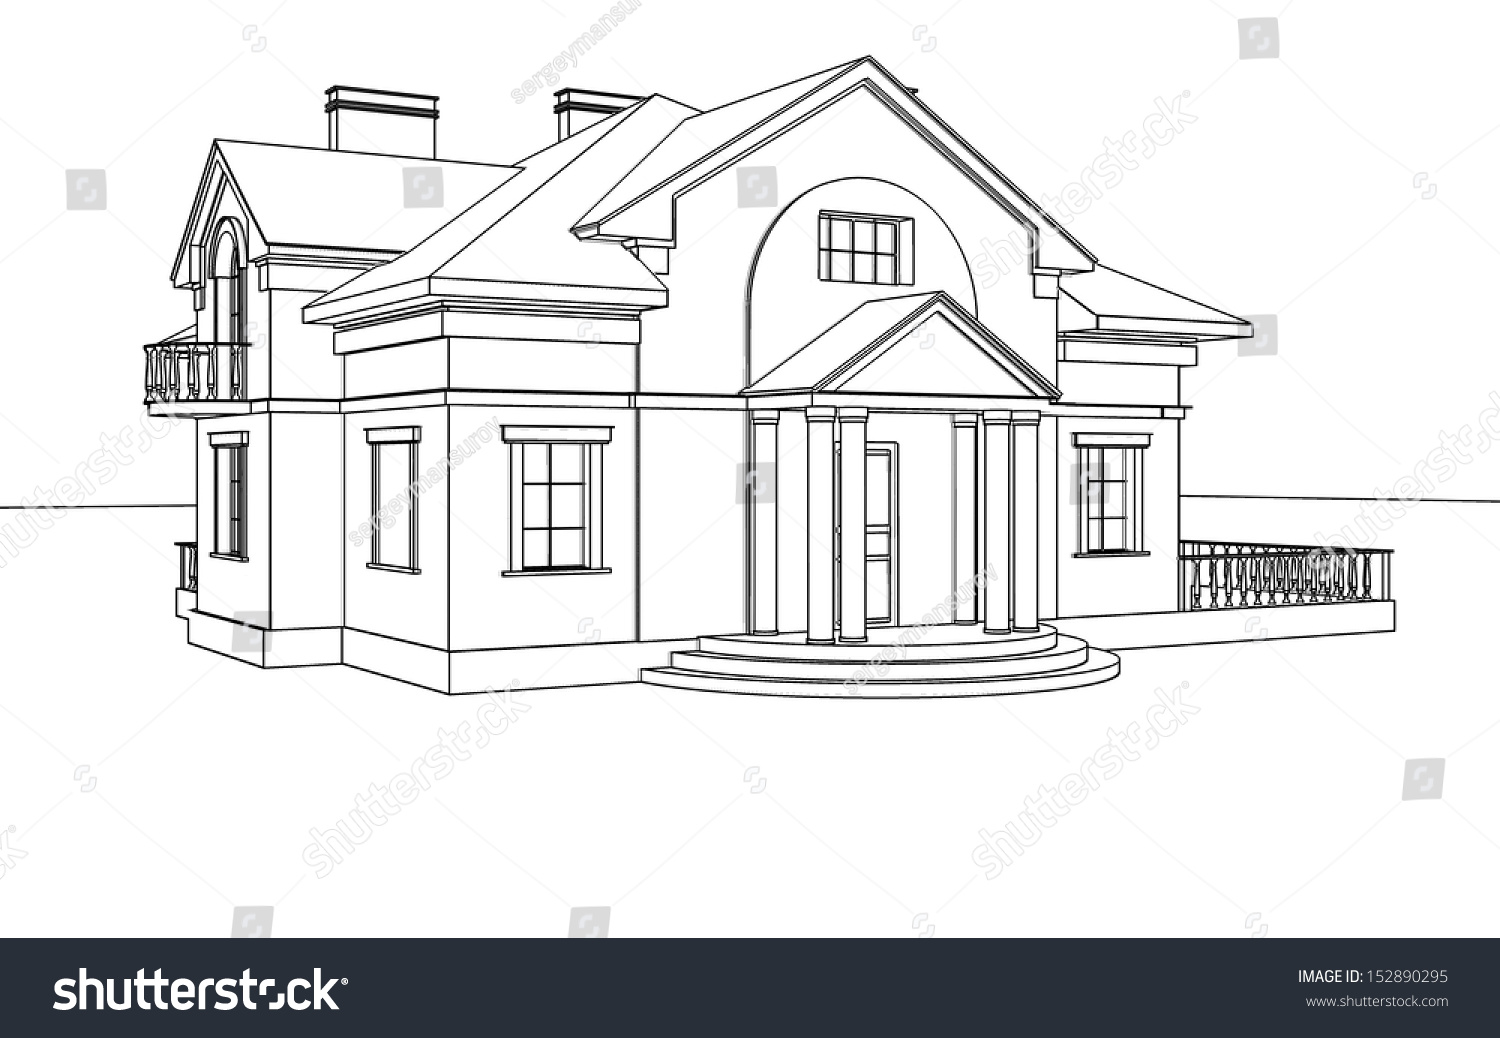 Drawing sketch house stock illustration 152890295 for House sketches from photos